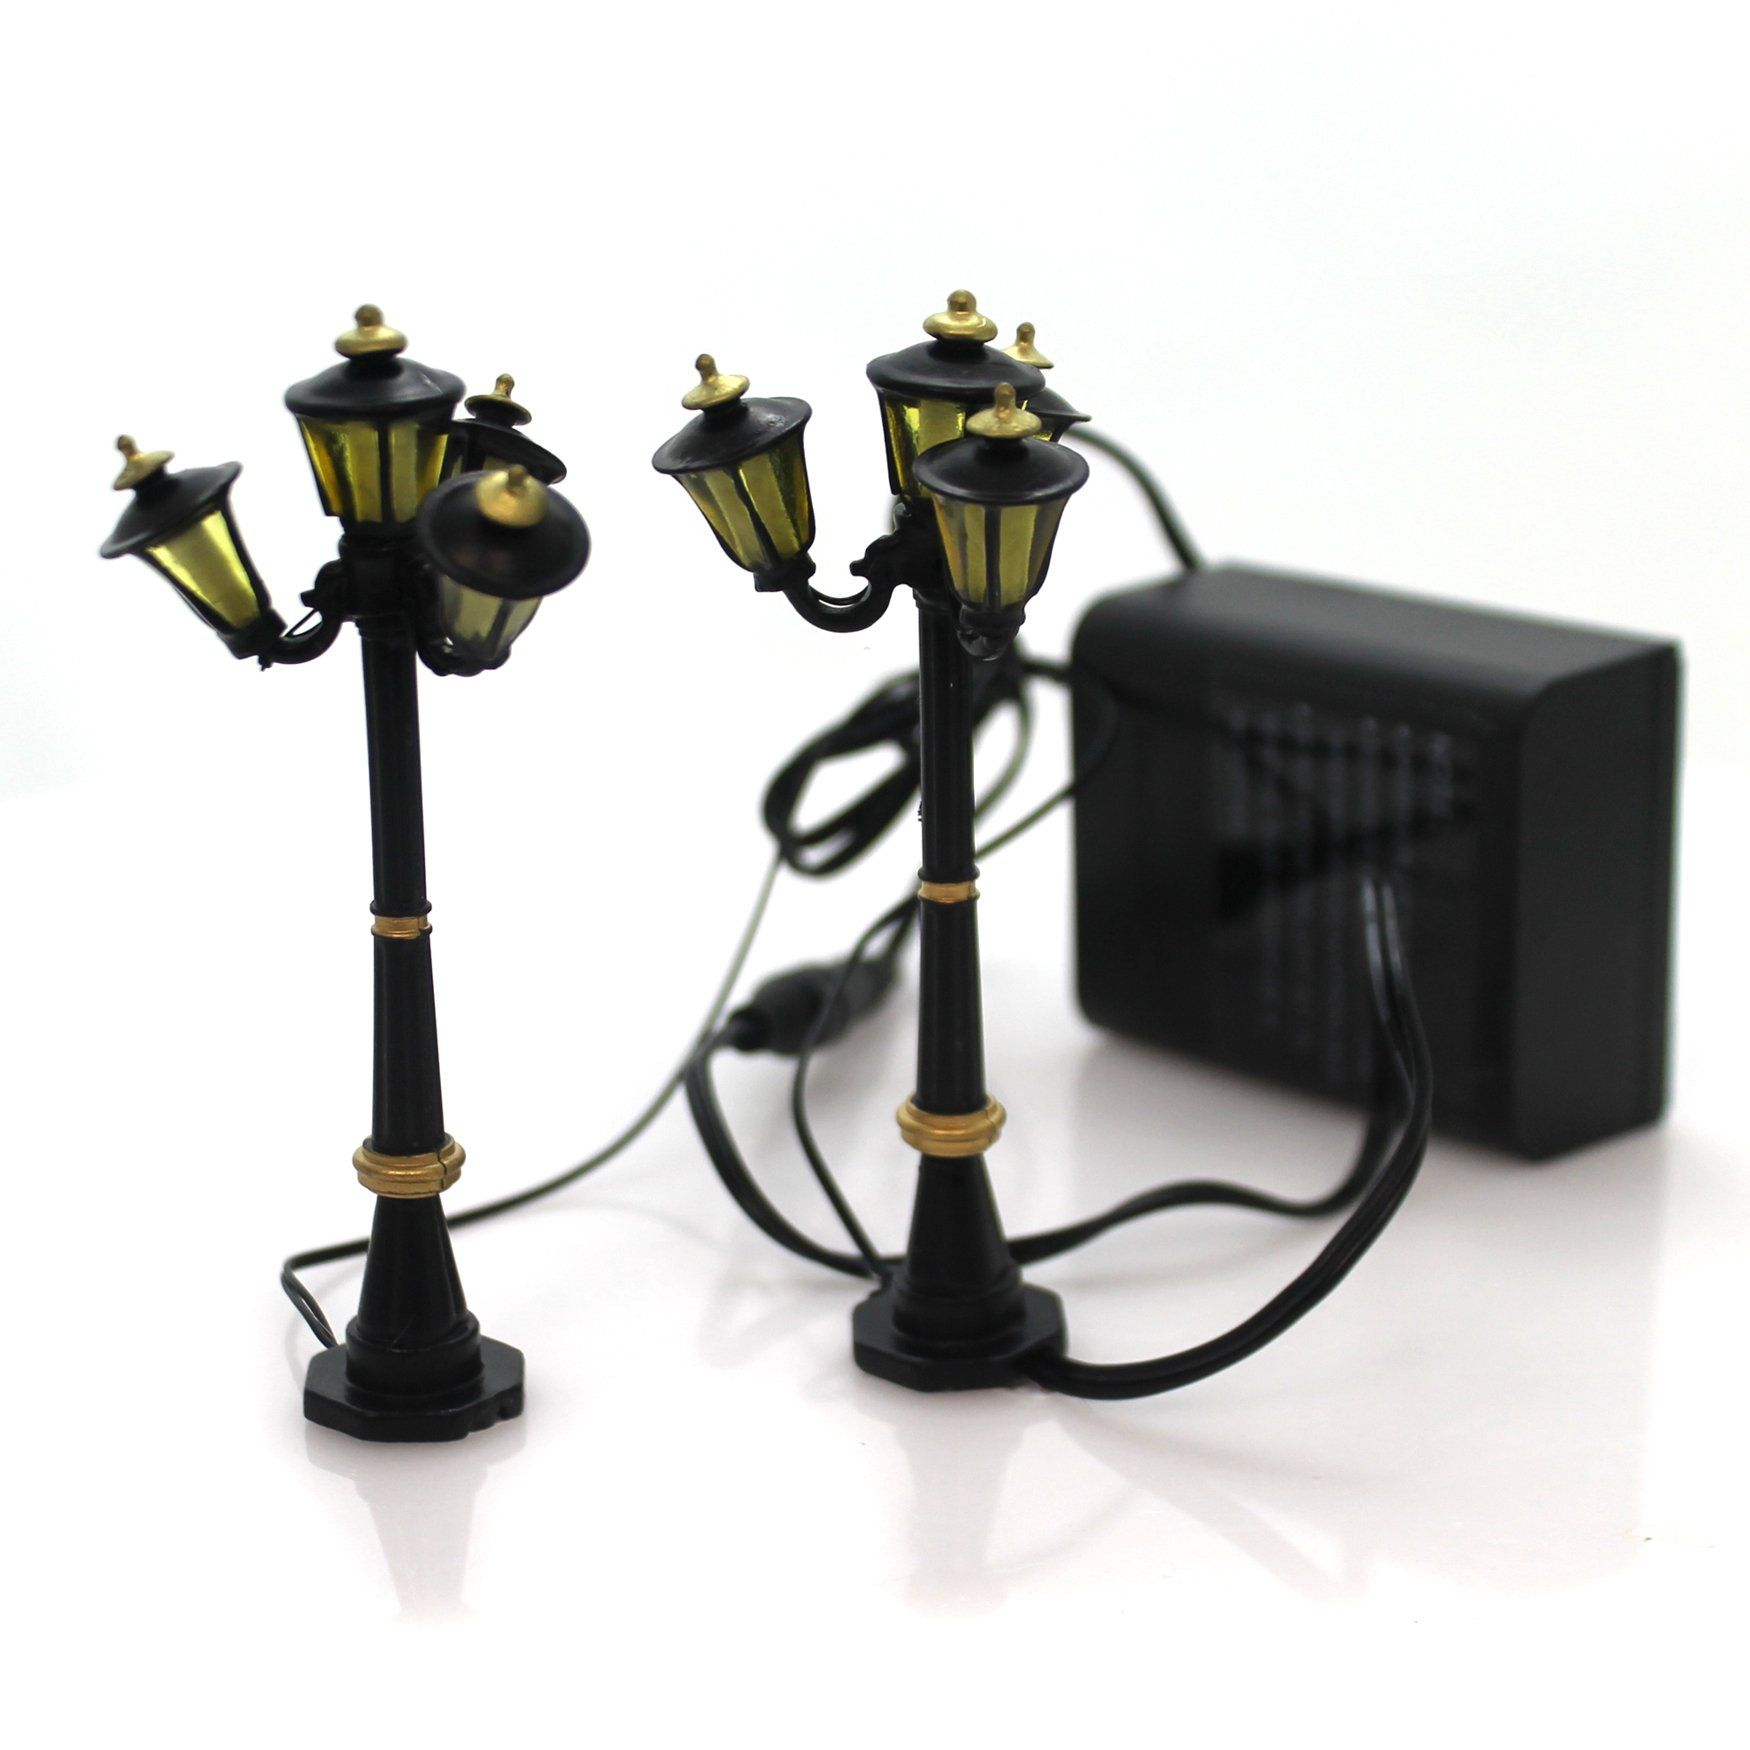 Department 56 Accessory Victorian Street Lamps Polyresin